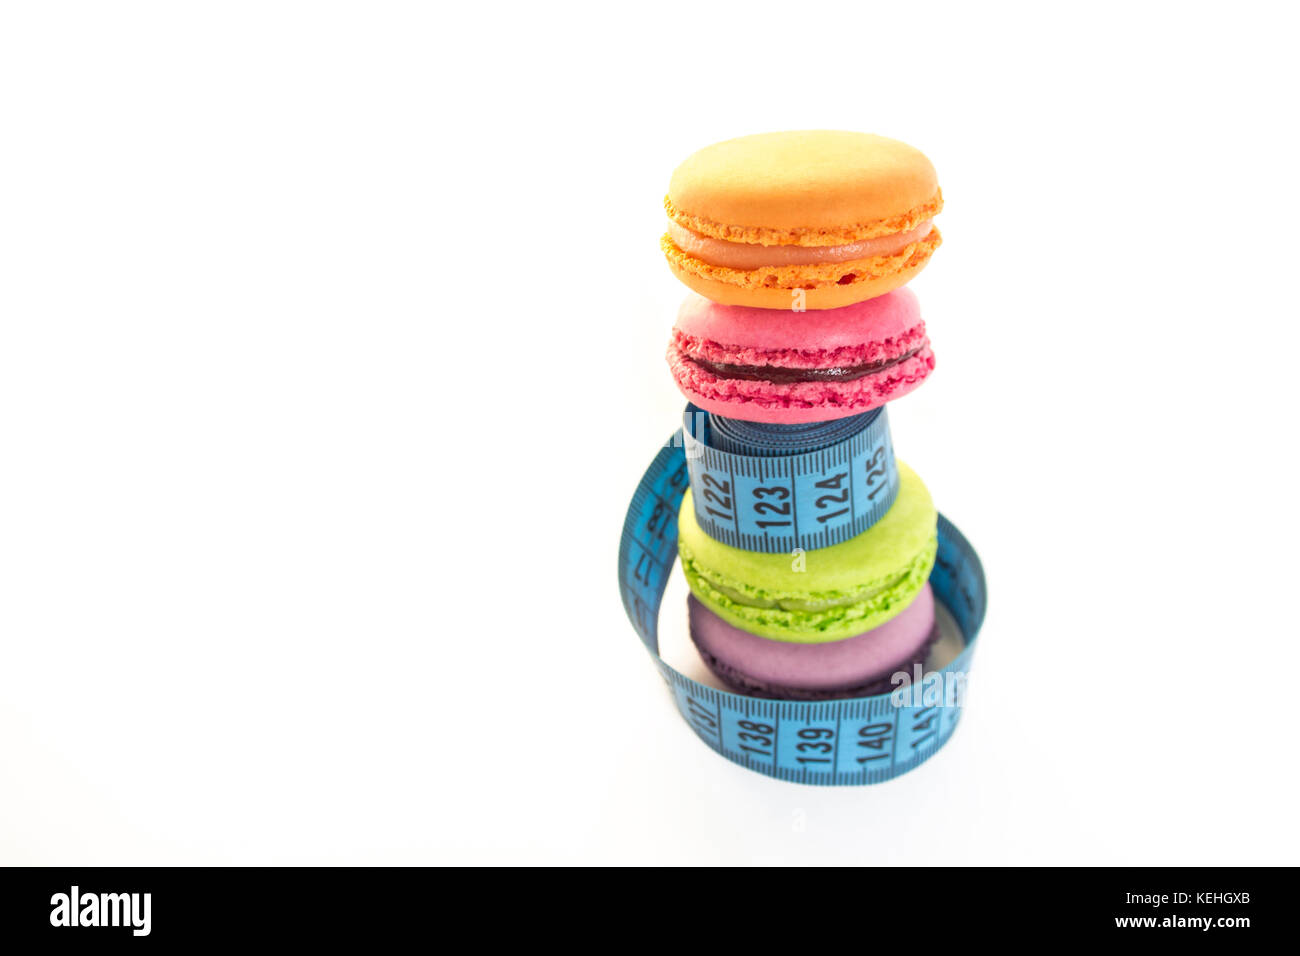 Colorful macaroons and blue meter tape, concept of healthy eating and nutrition - Stock Image